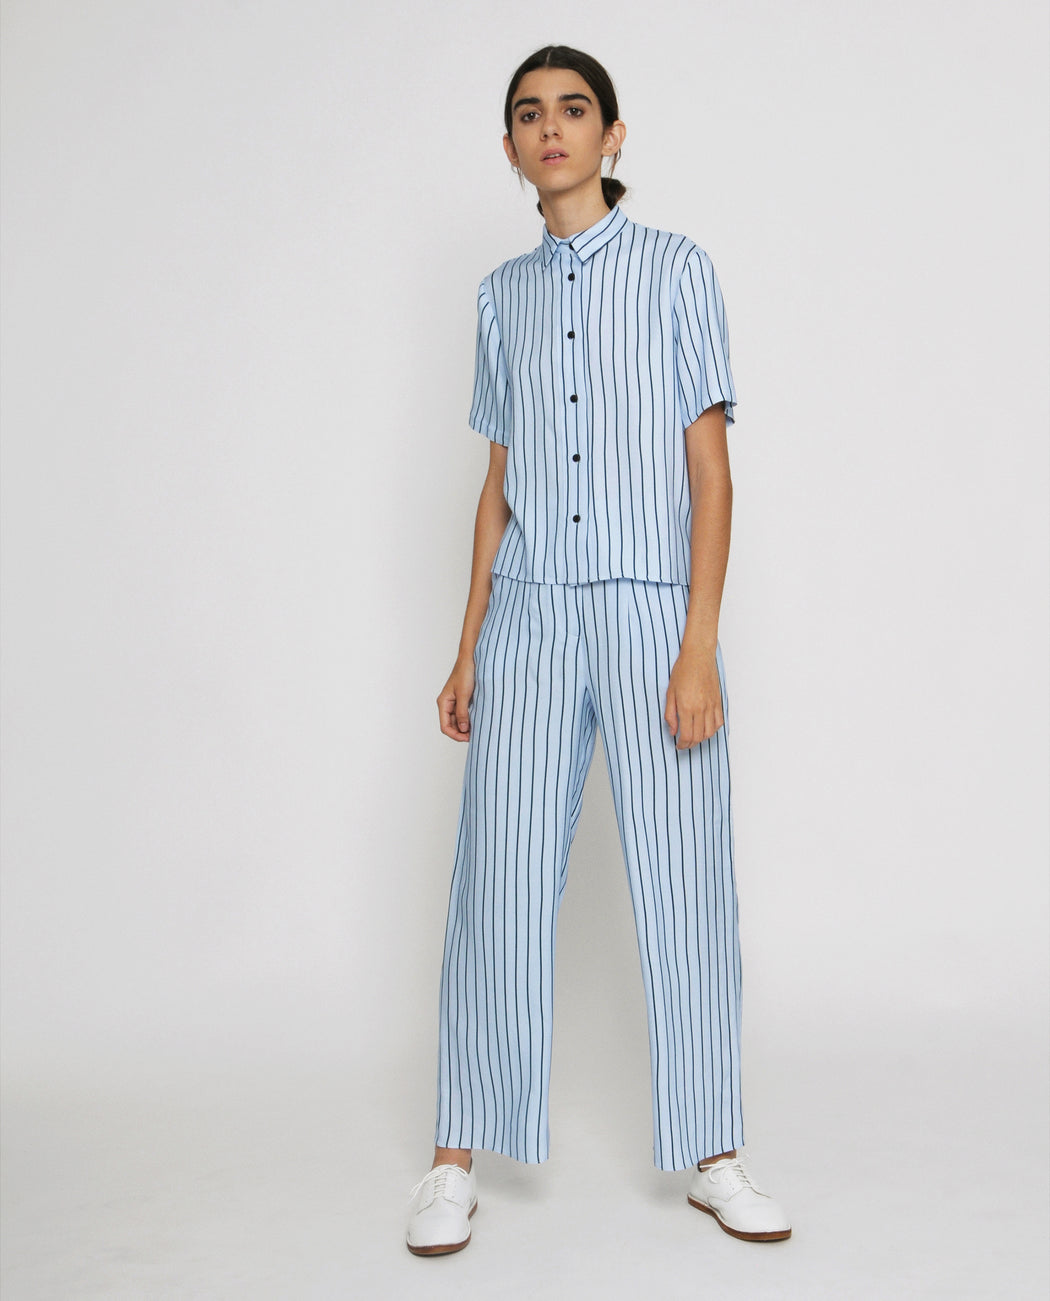 Alex striped trousers